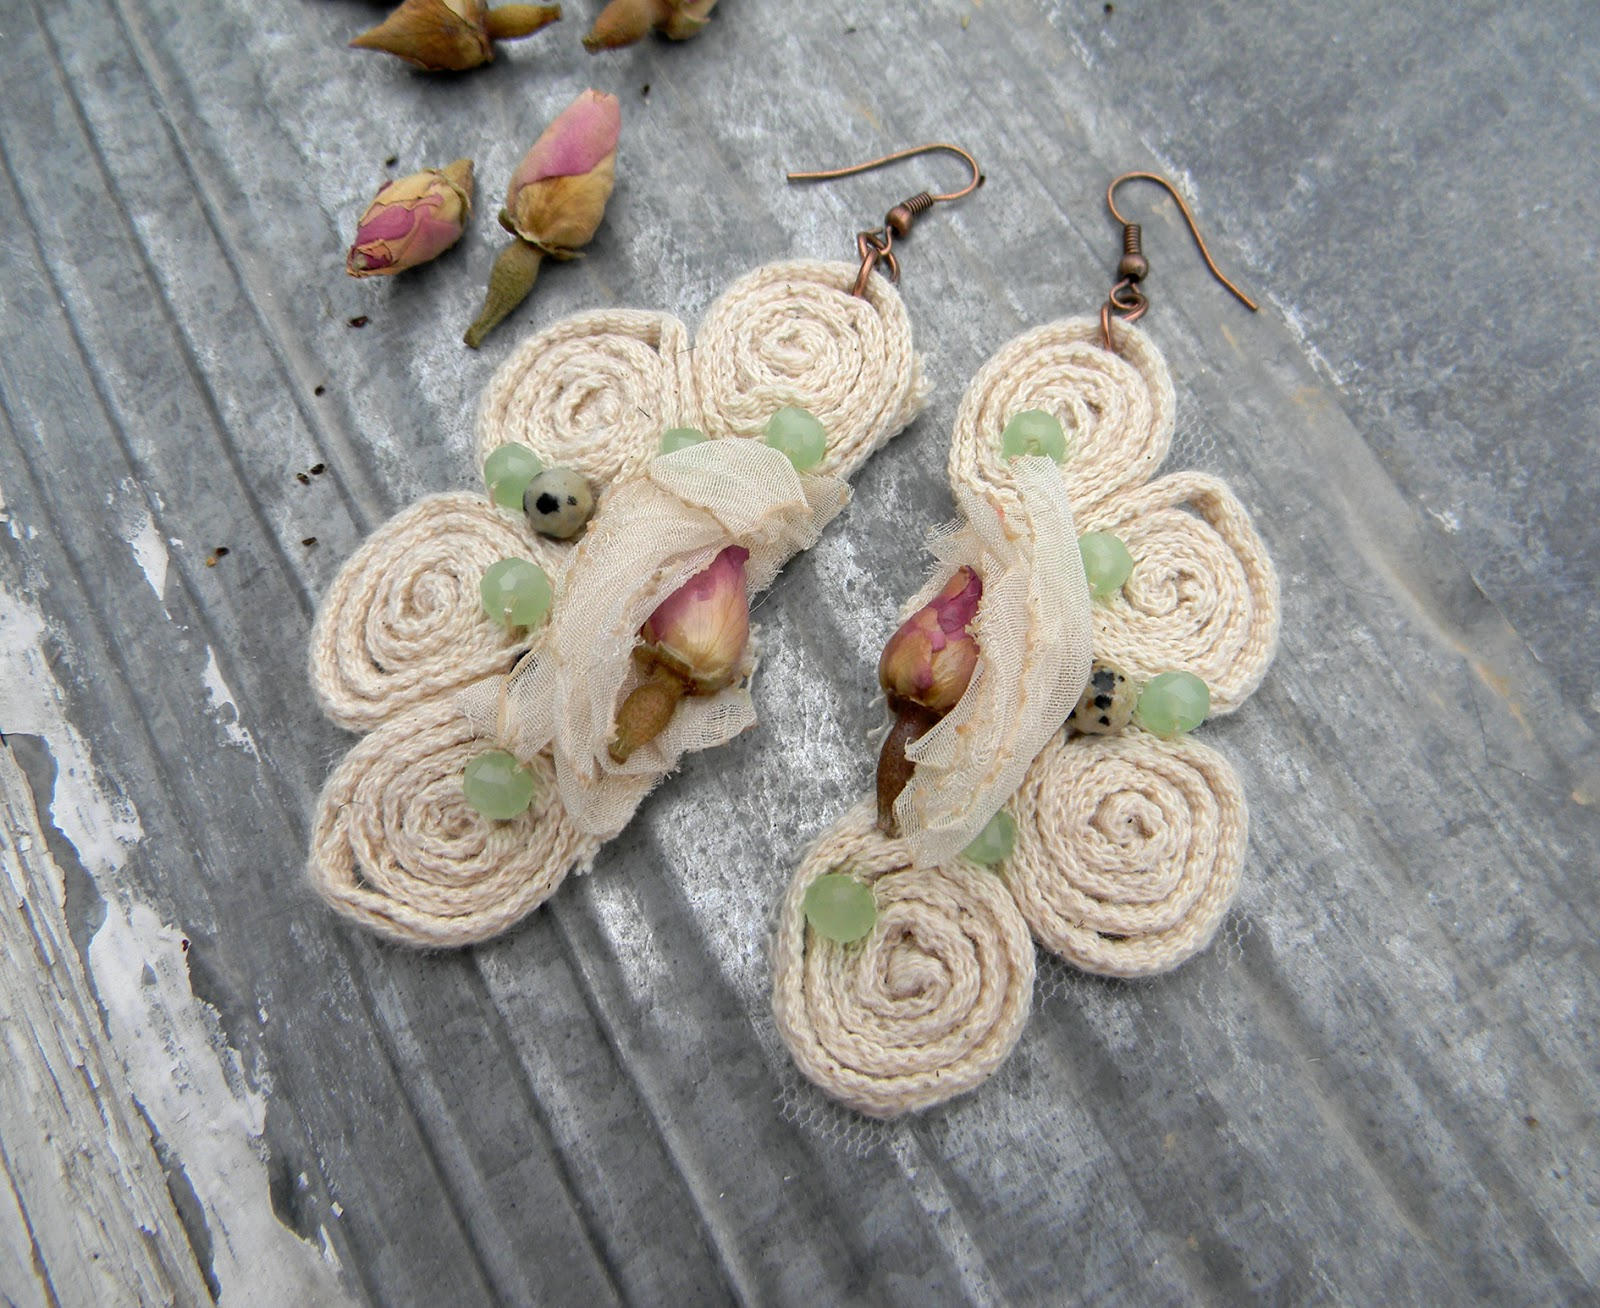 Unique Handmade Earrings Fashion Shabby Eco Chic Handcrafted Jewelry Original